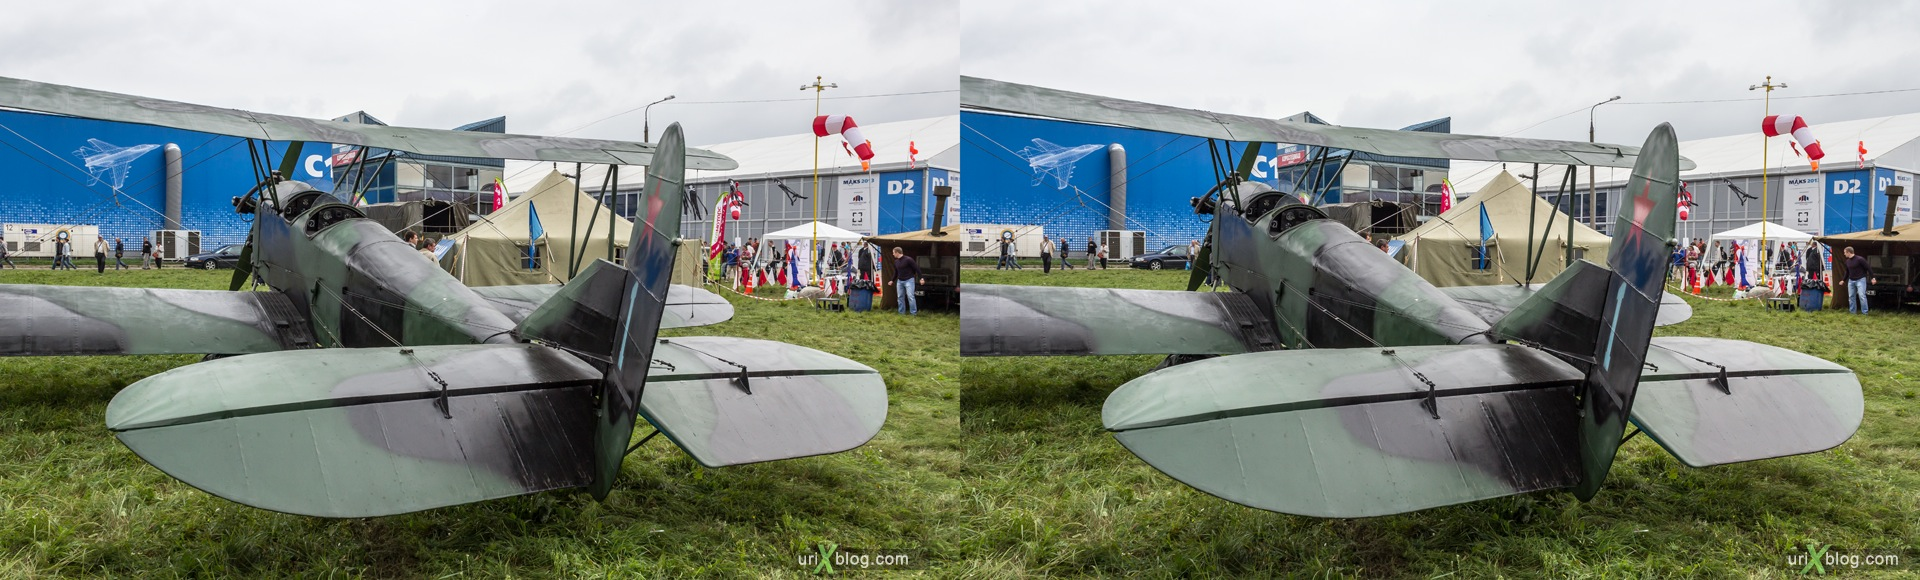 2013, Po-2, MAKS, International Aviation and Space Salon, Russia, Ramenskoye airfield, airplane, 3D, stereo pair, cross-eyed, crossview, cross view stereo pair, stereoscopic